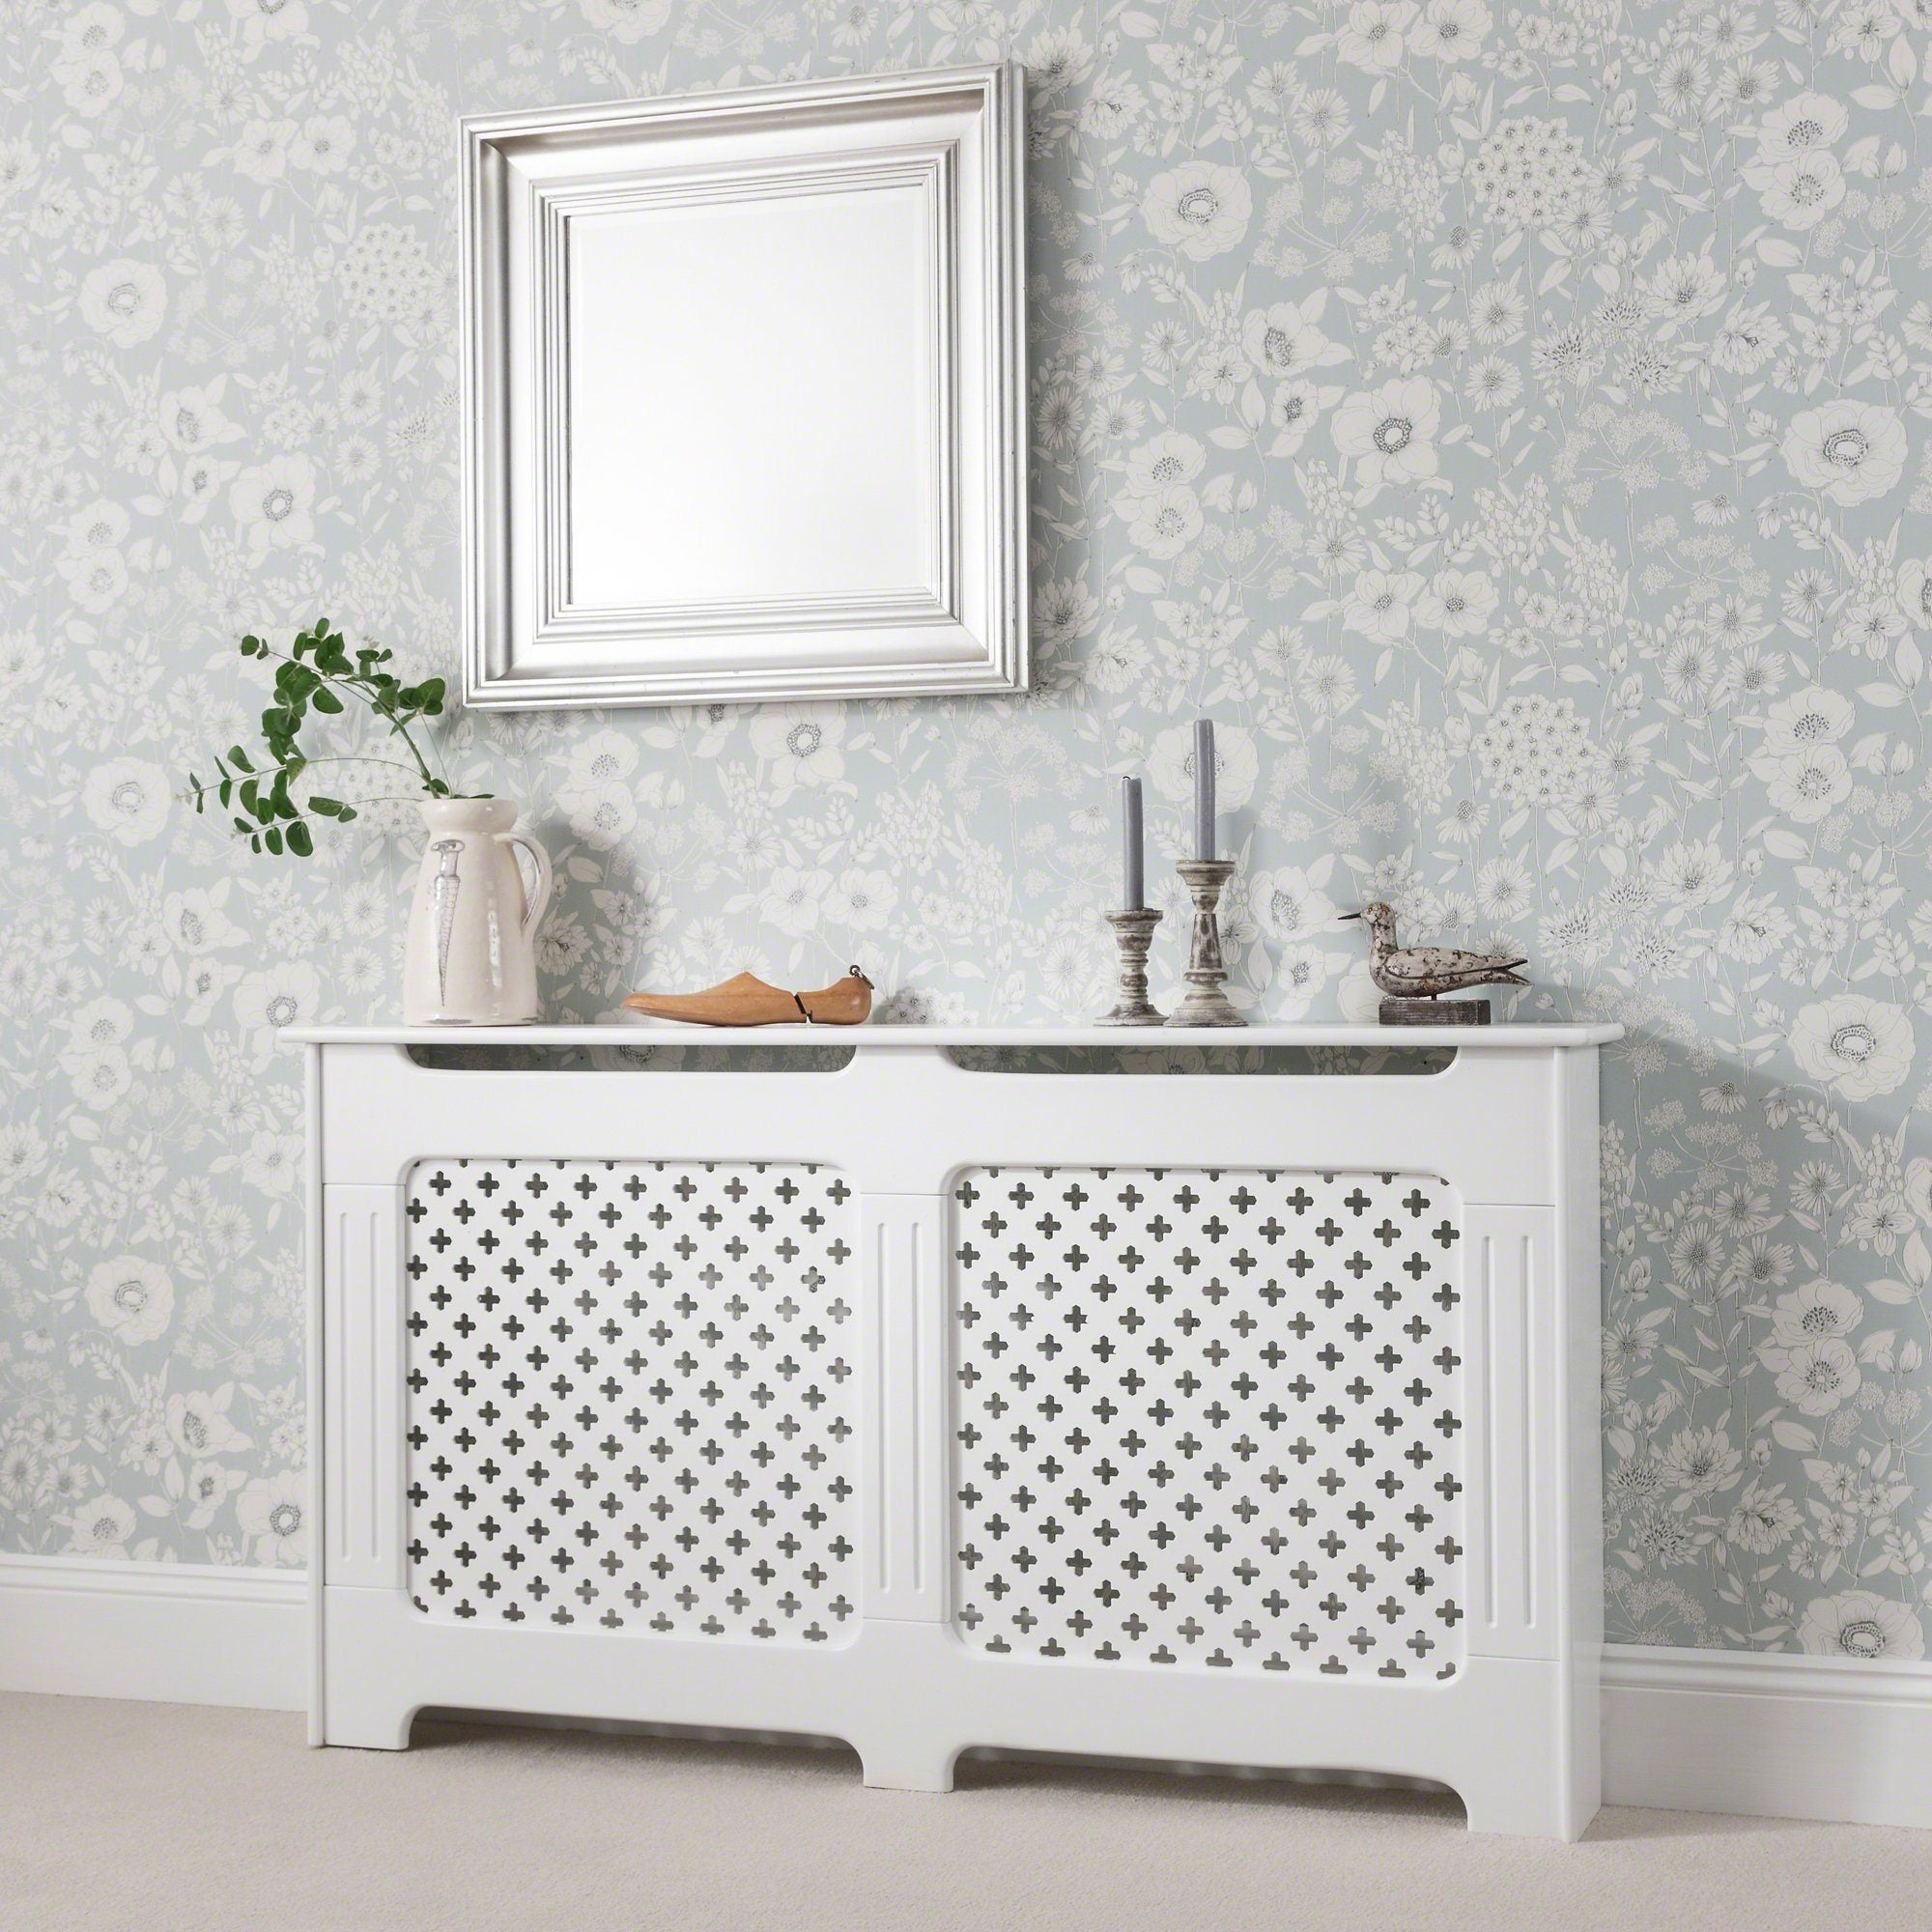 Radiator Cover - White Painted - Large - Laura James